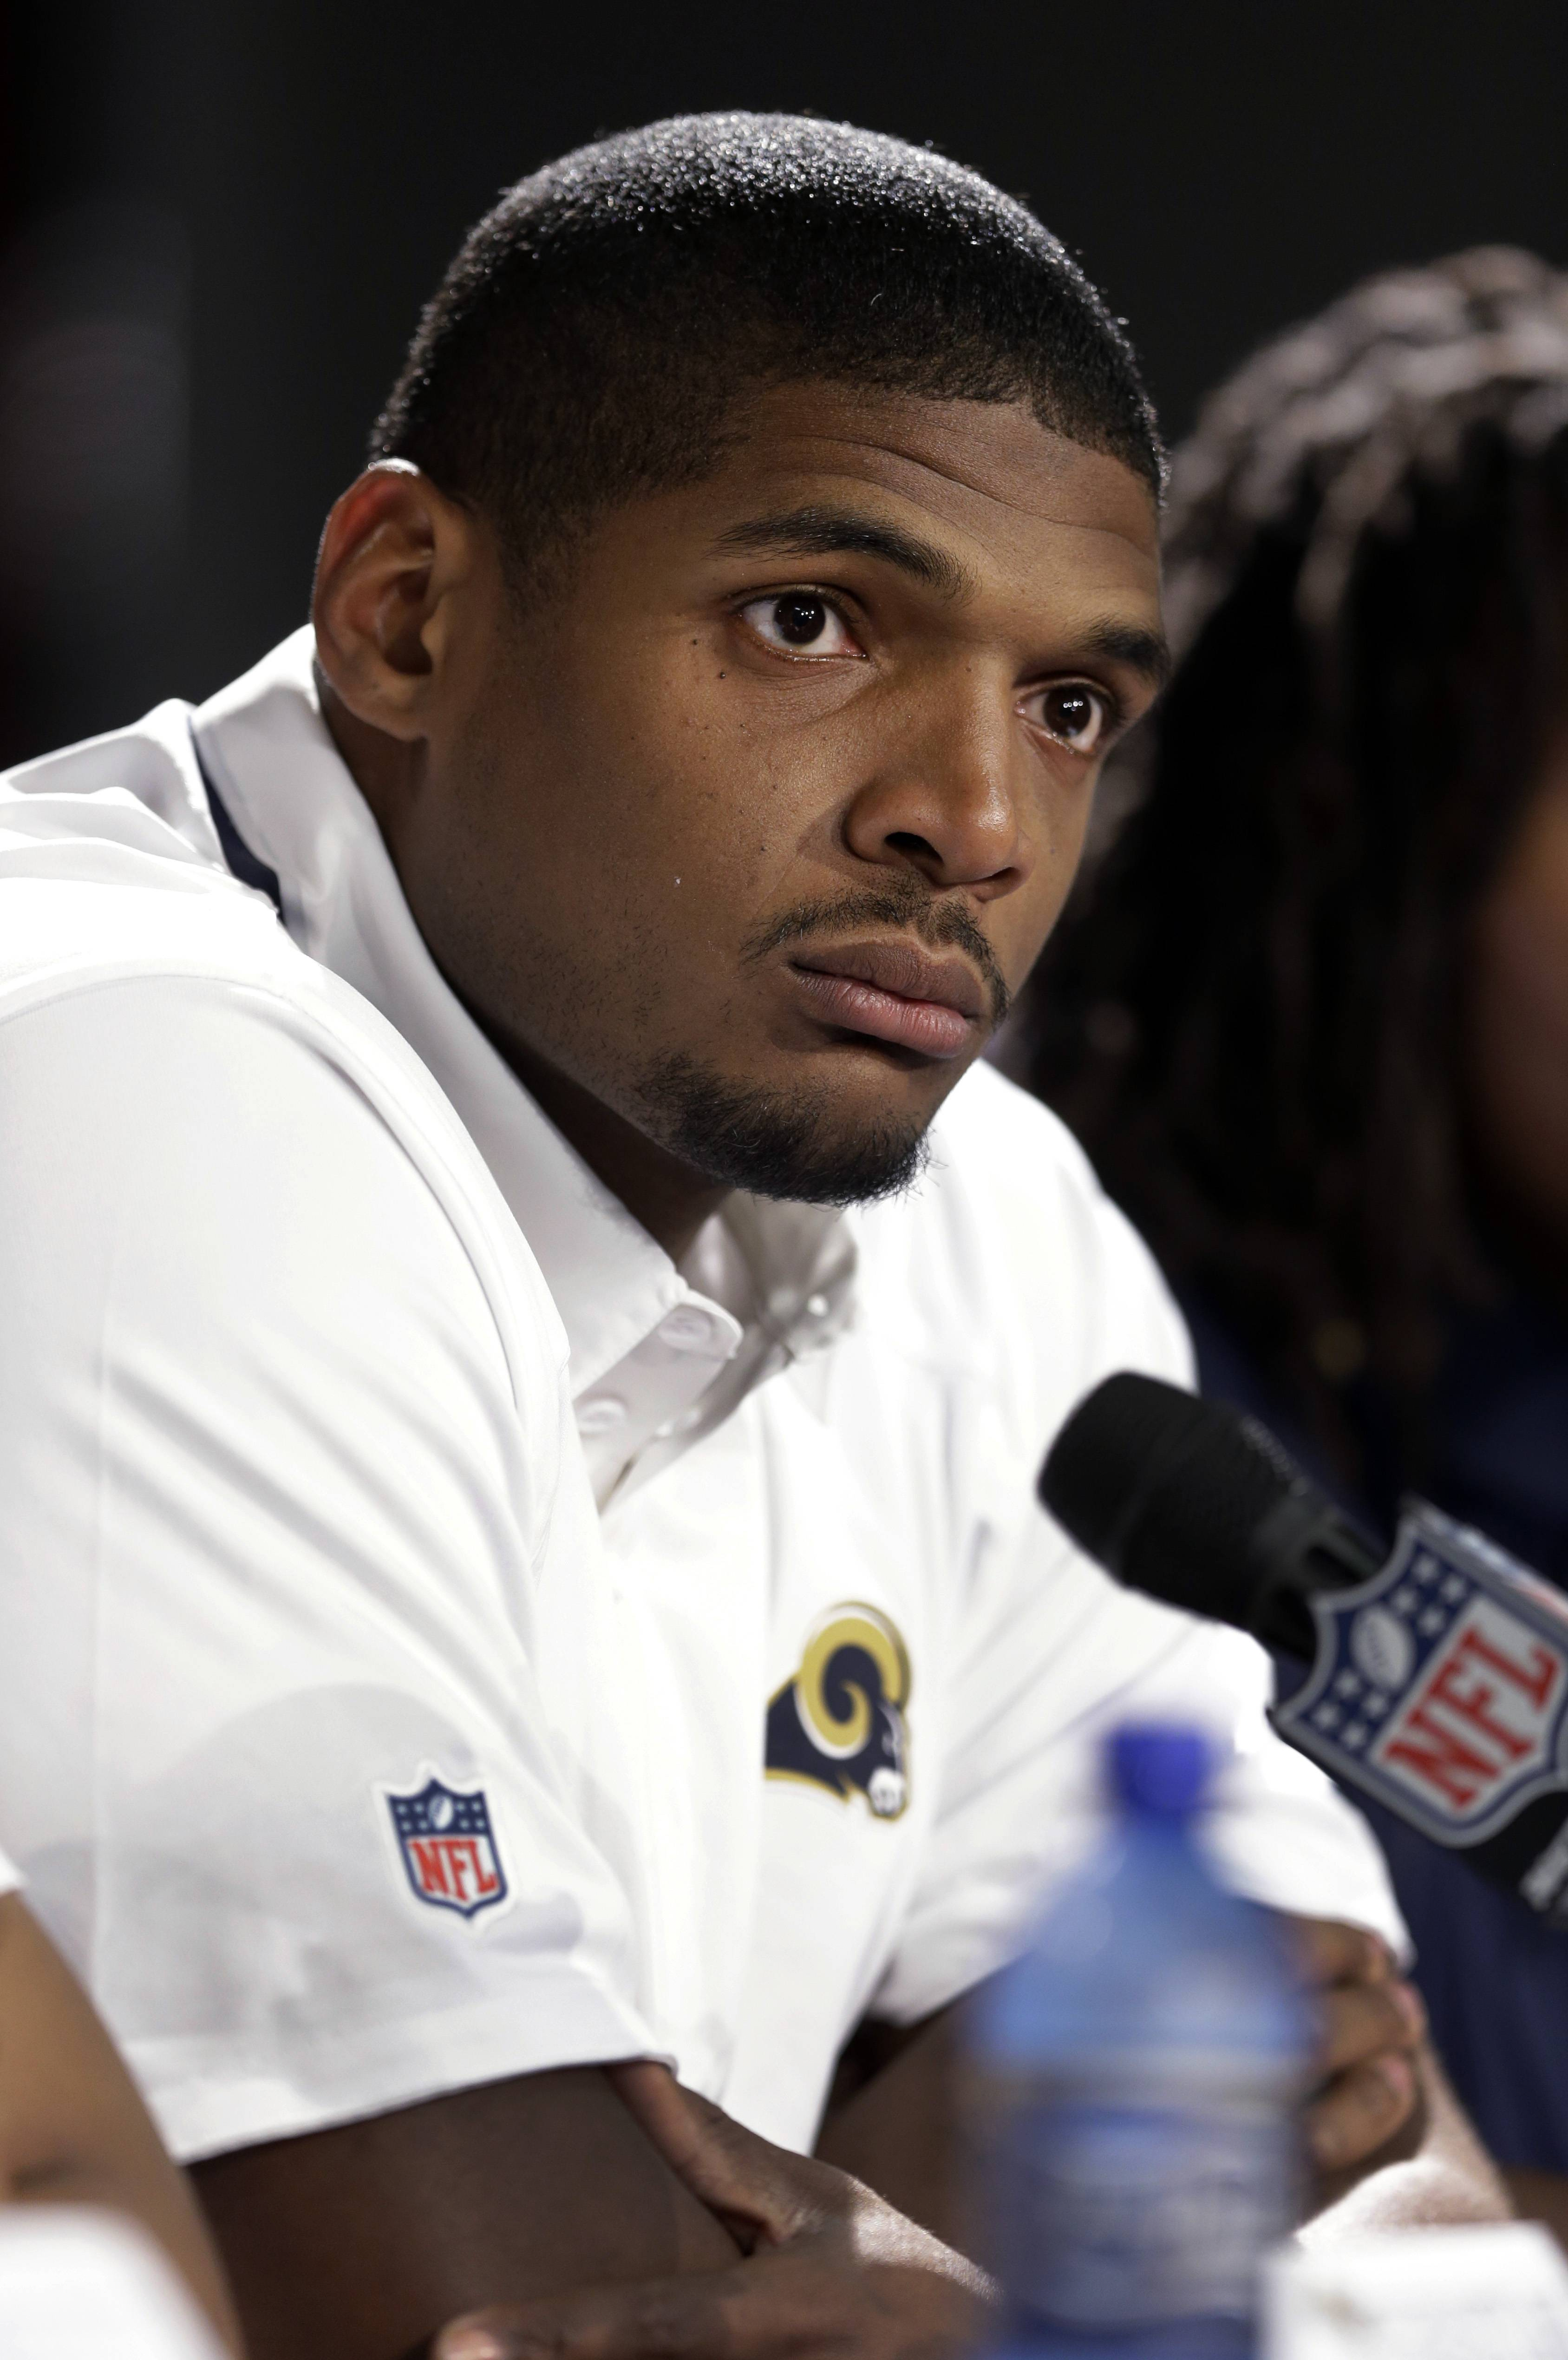 St. Louis Rams seventh-round draft pick Michael Sam listens to a question during a news conference at the NFL football team's practice facility Tuesday, May 13, 2014, in St. Louis.